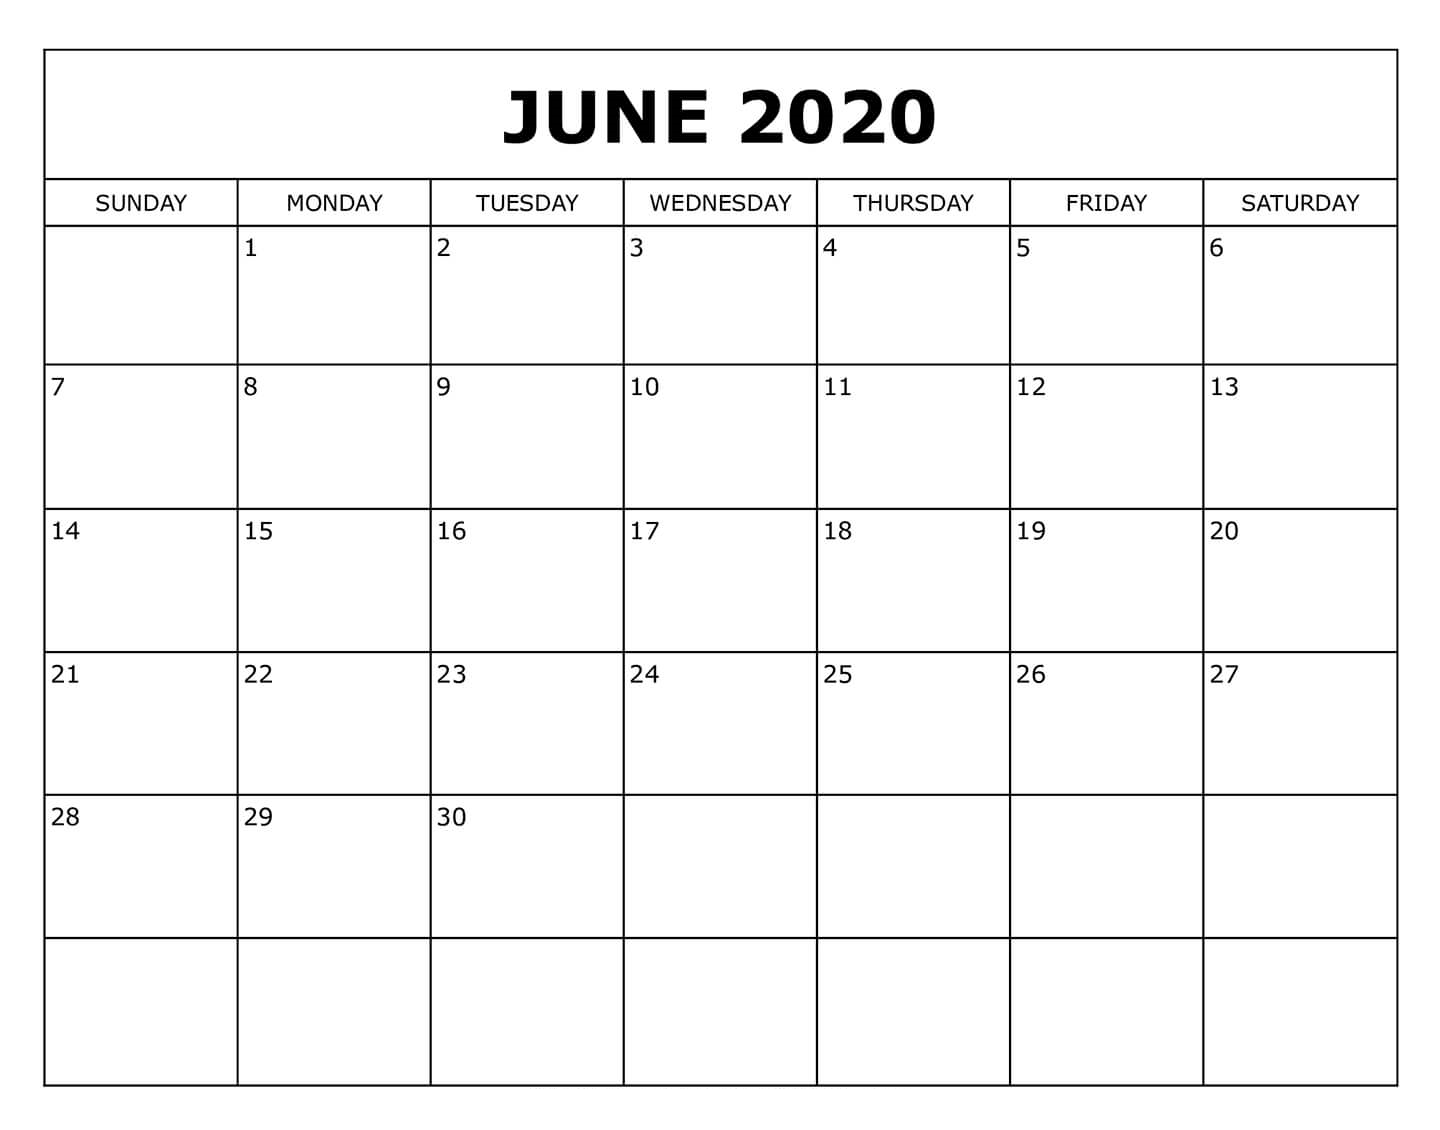 June 2020 Calendar PDF Download Online